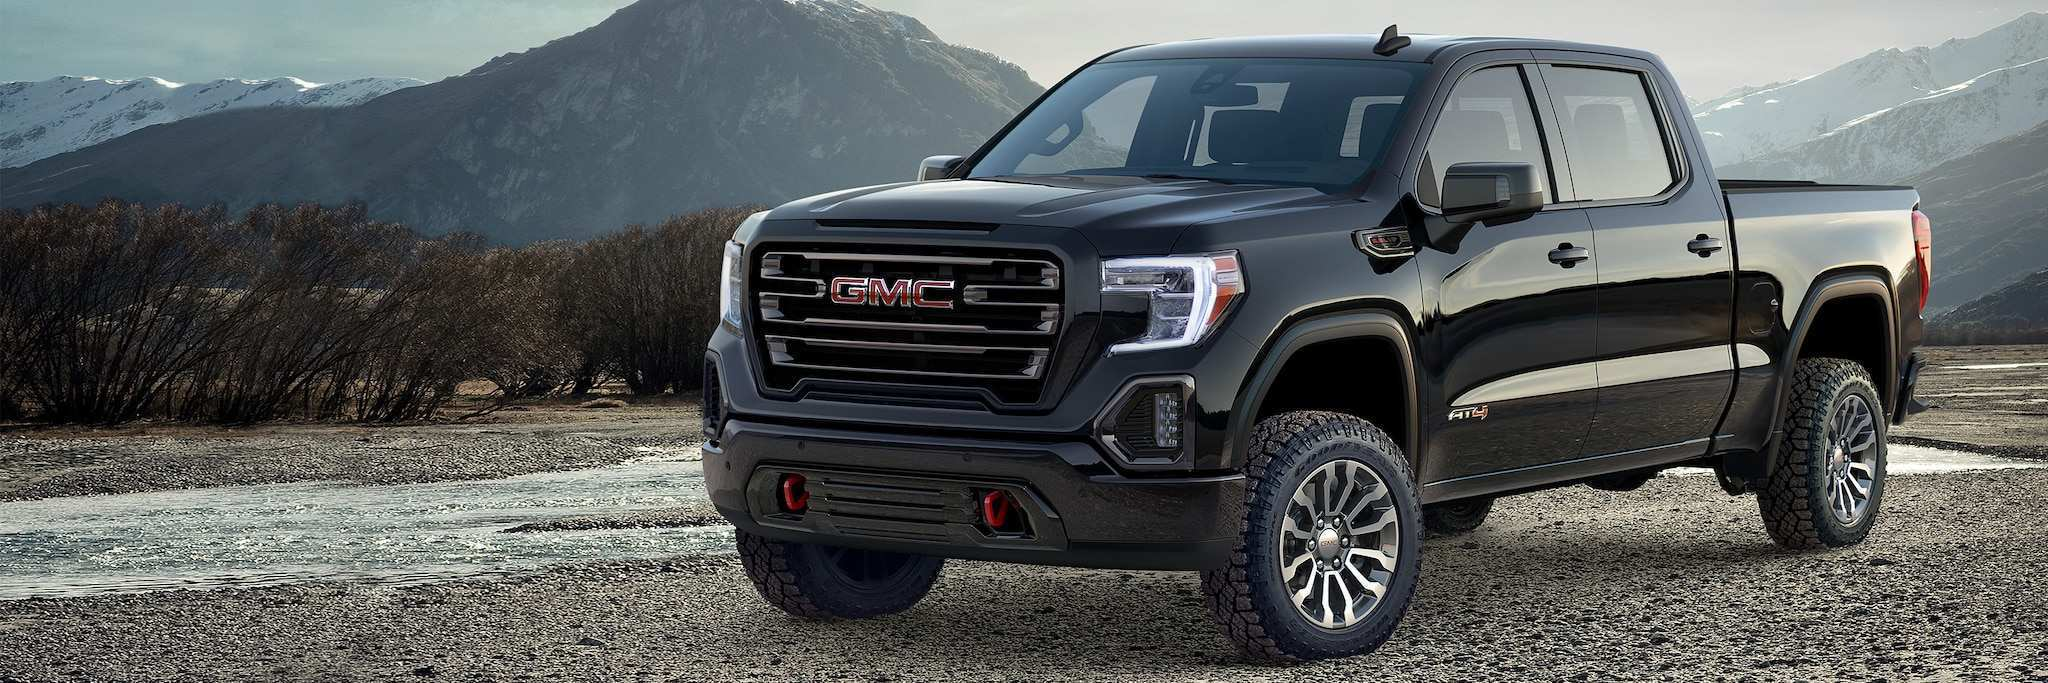 46 The Best 2019 Gmc 3 4 Ton Truck Images